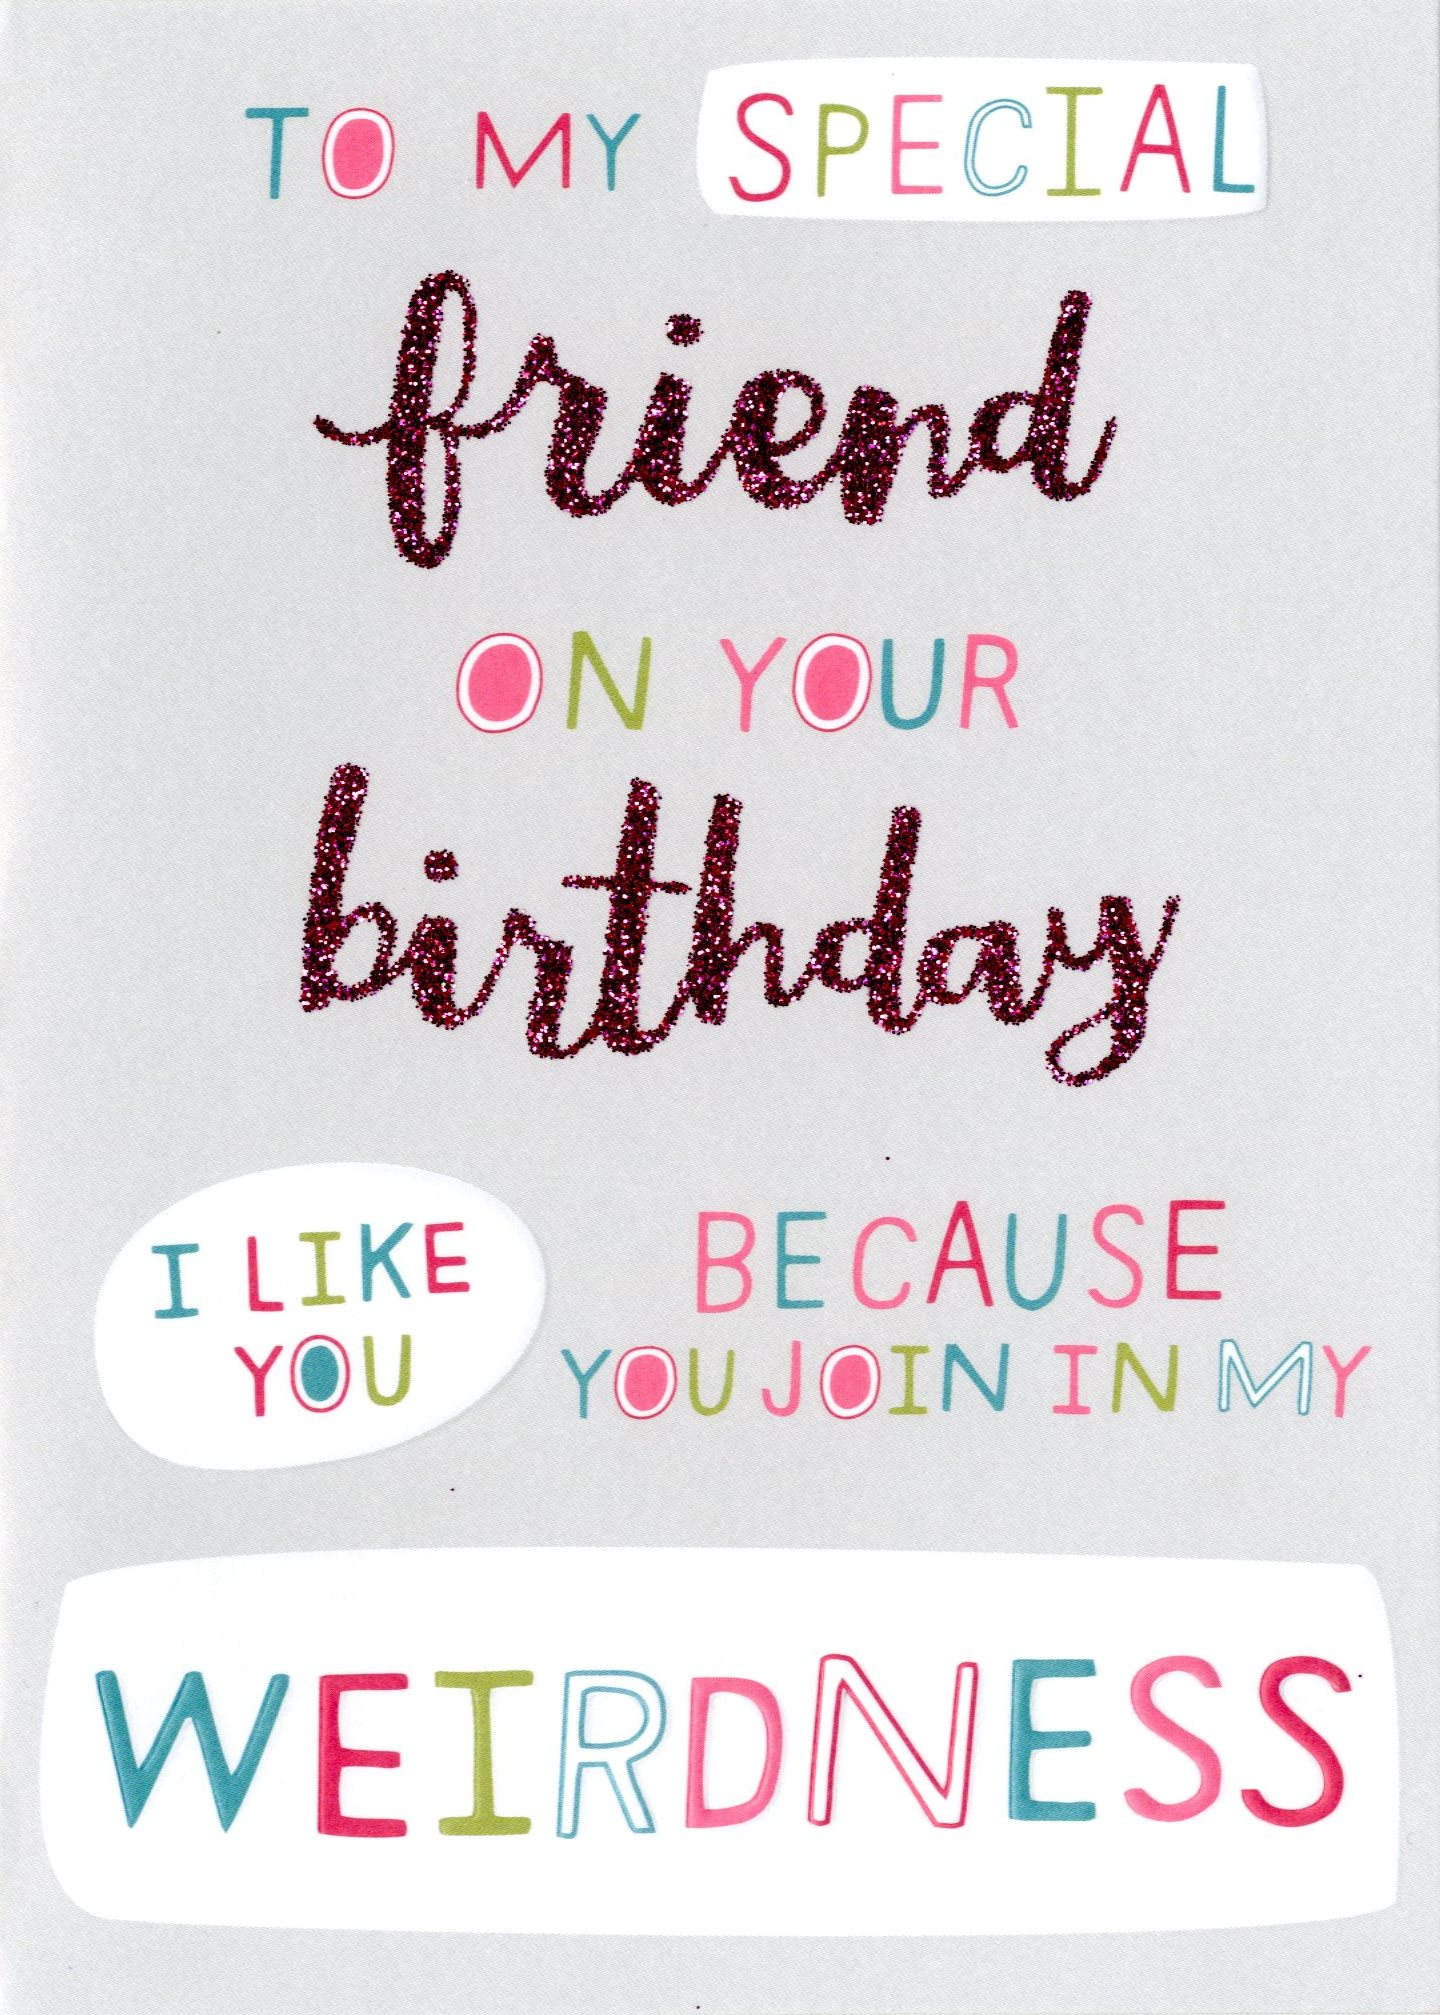 Special Weird Friend Birthday Card | Cards | Love Kates